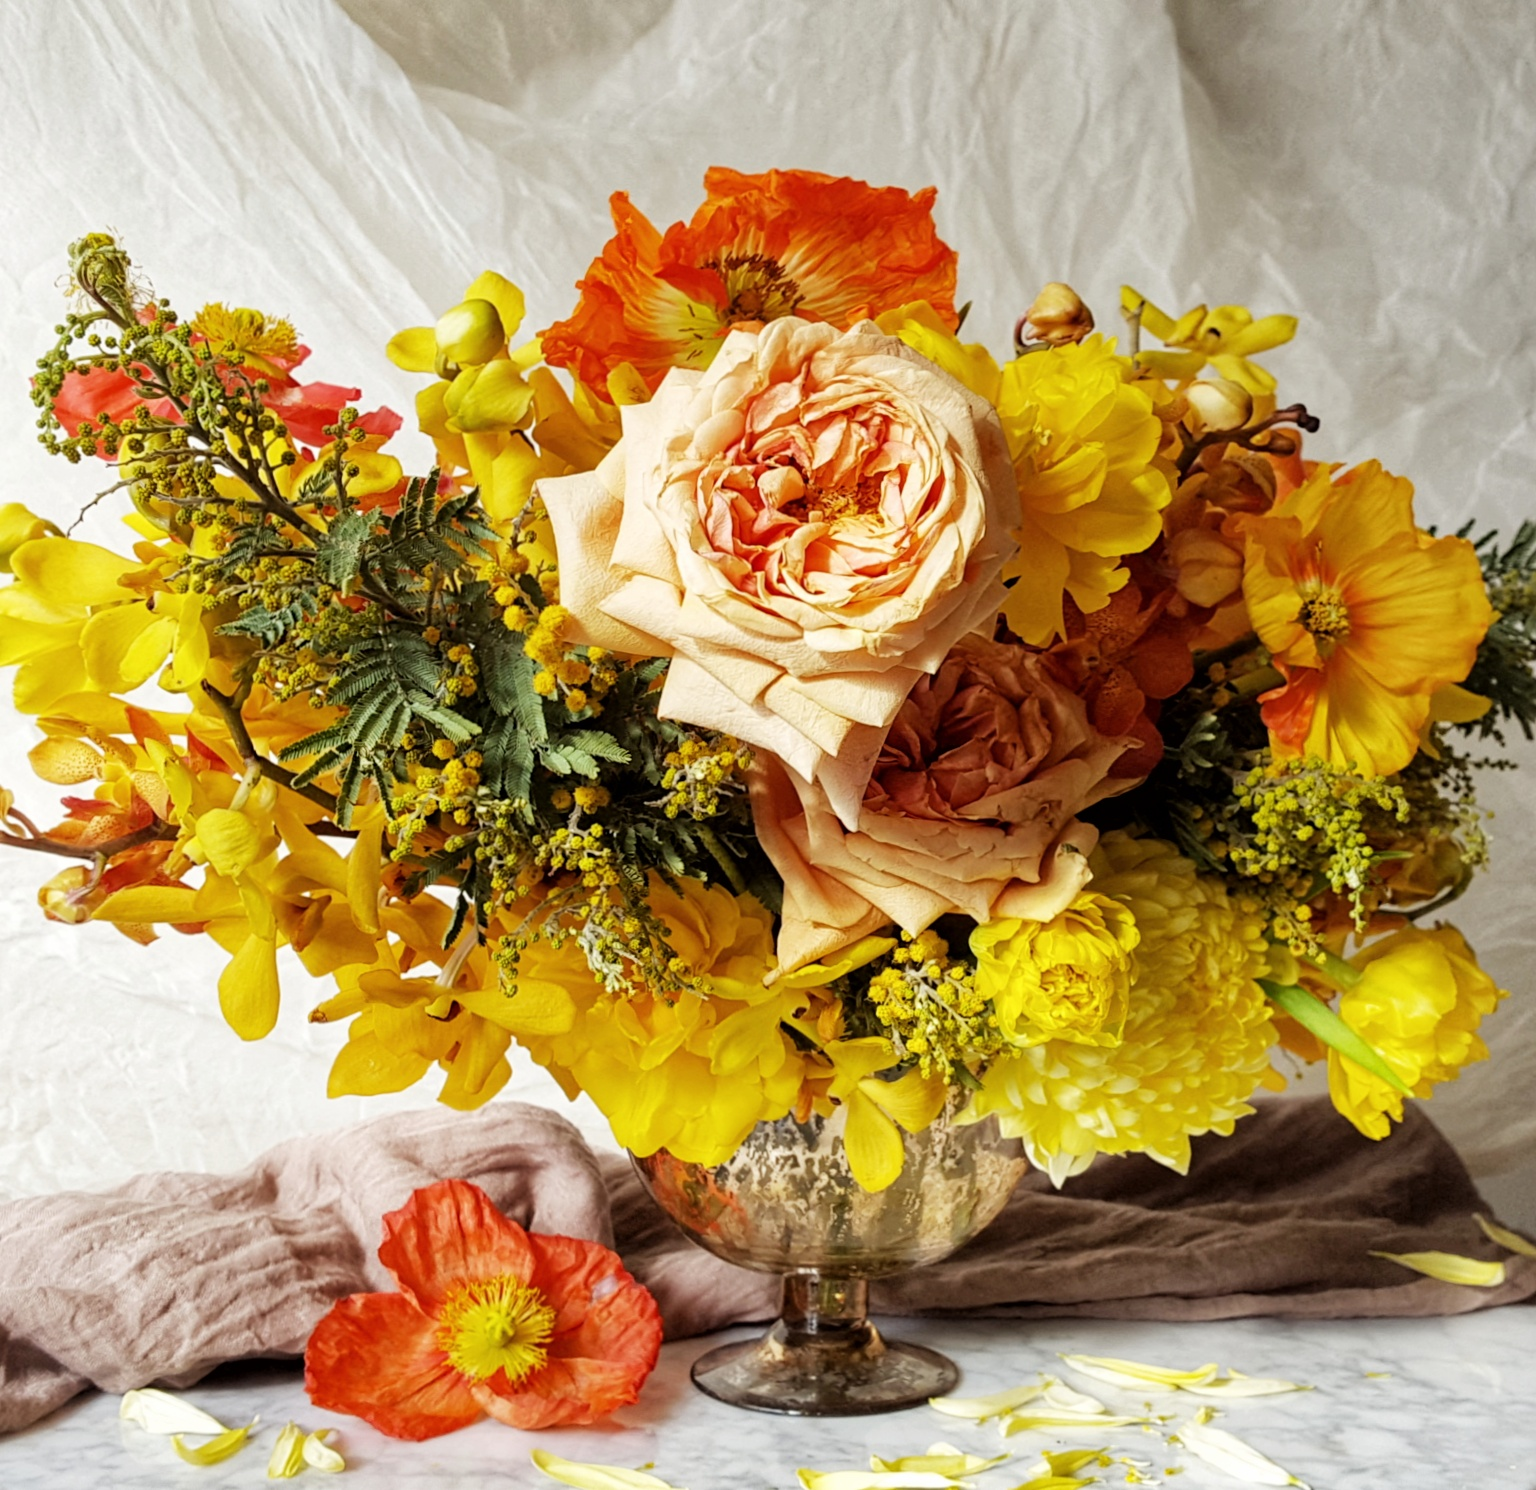 Gifting Services - Flower Gift Boxes,Anniversary Arrangements,Birthday Arrangements,Corporate Gifts,Thank You Gifts,Sympathy Gifts,Custom Branded Floral Gifts,Luxury Flower Gifts.